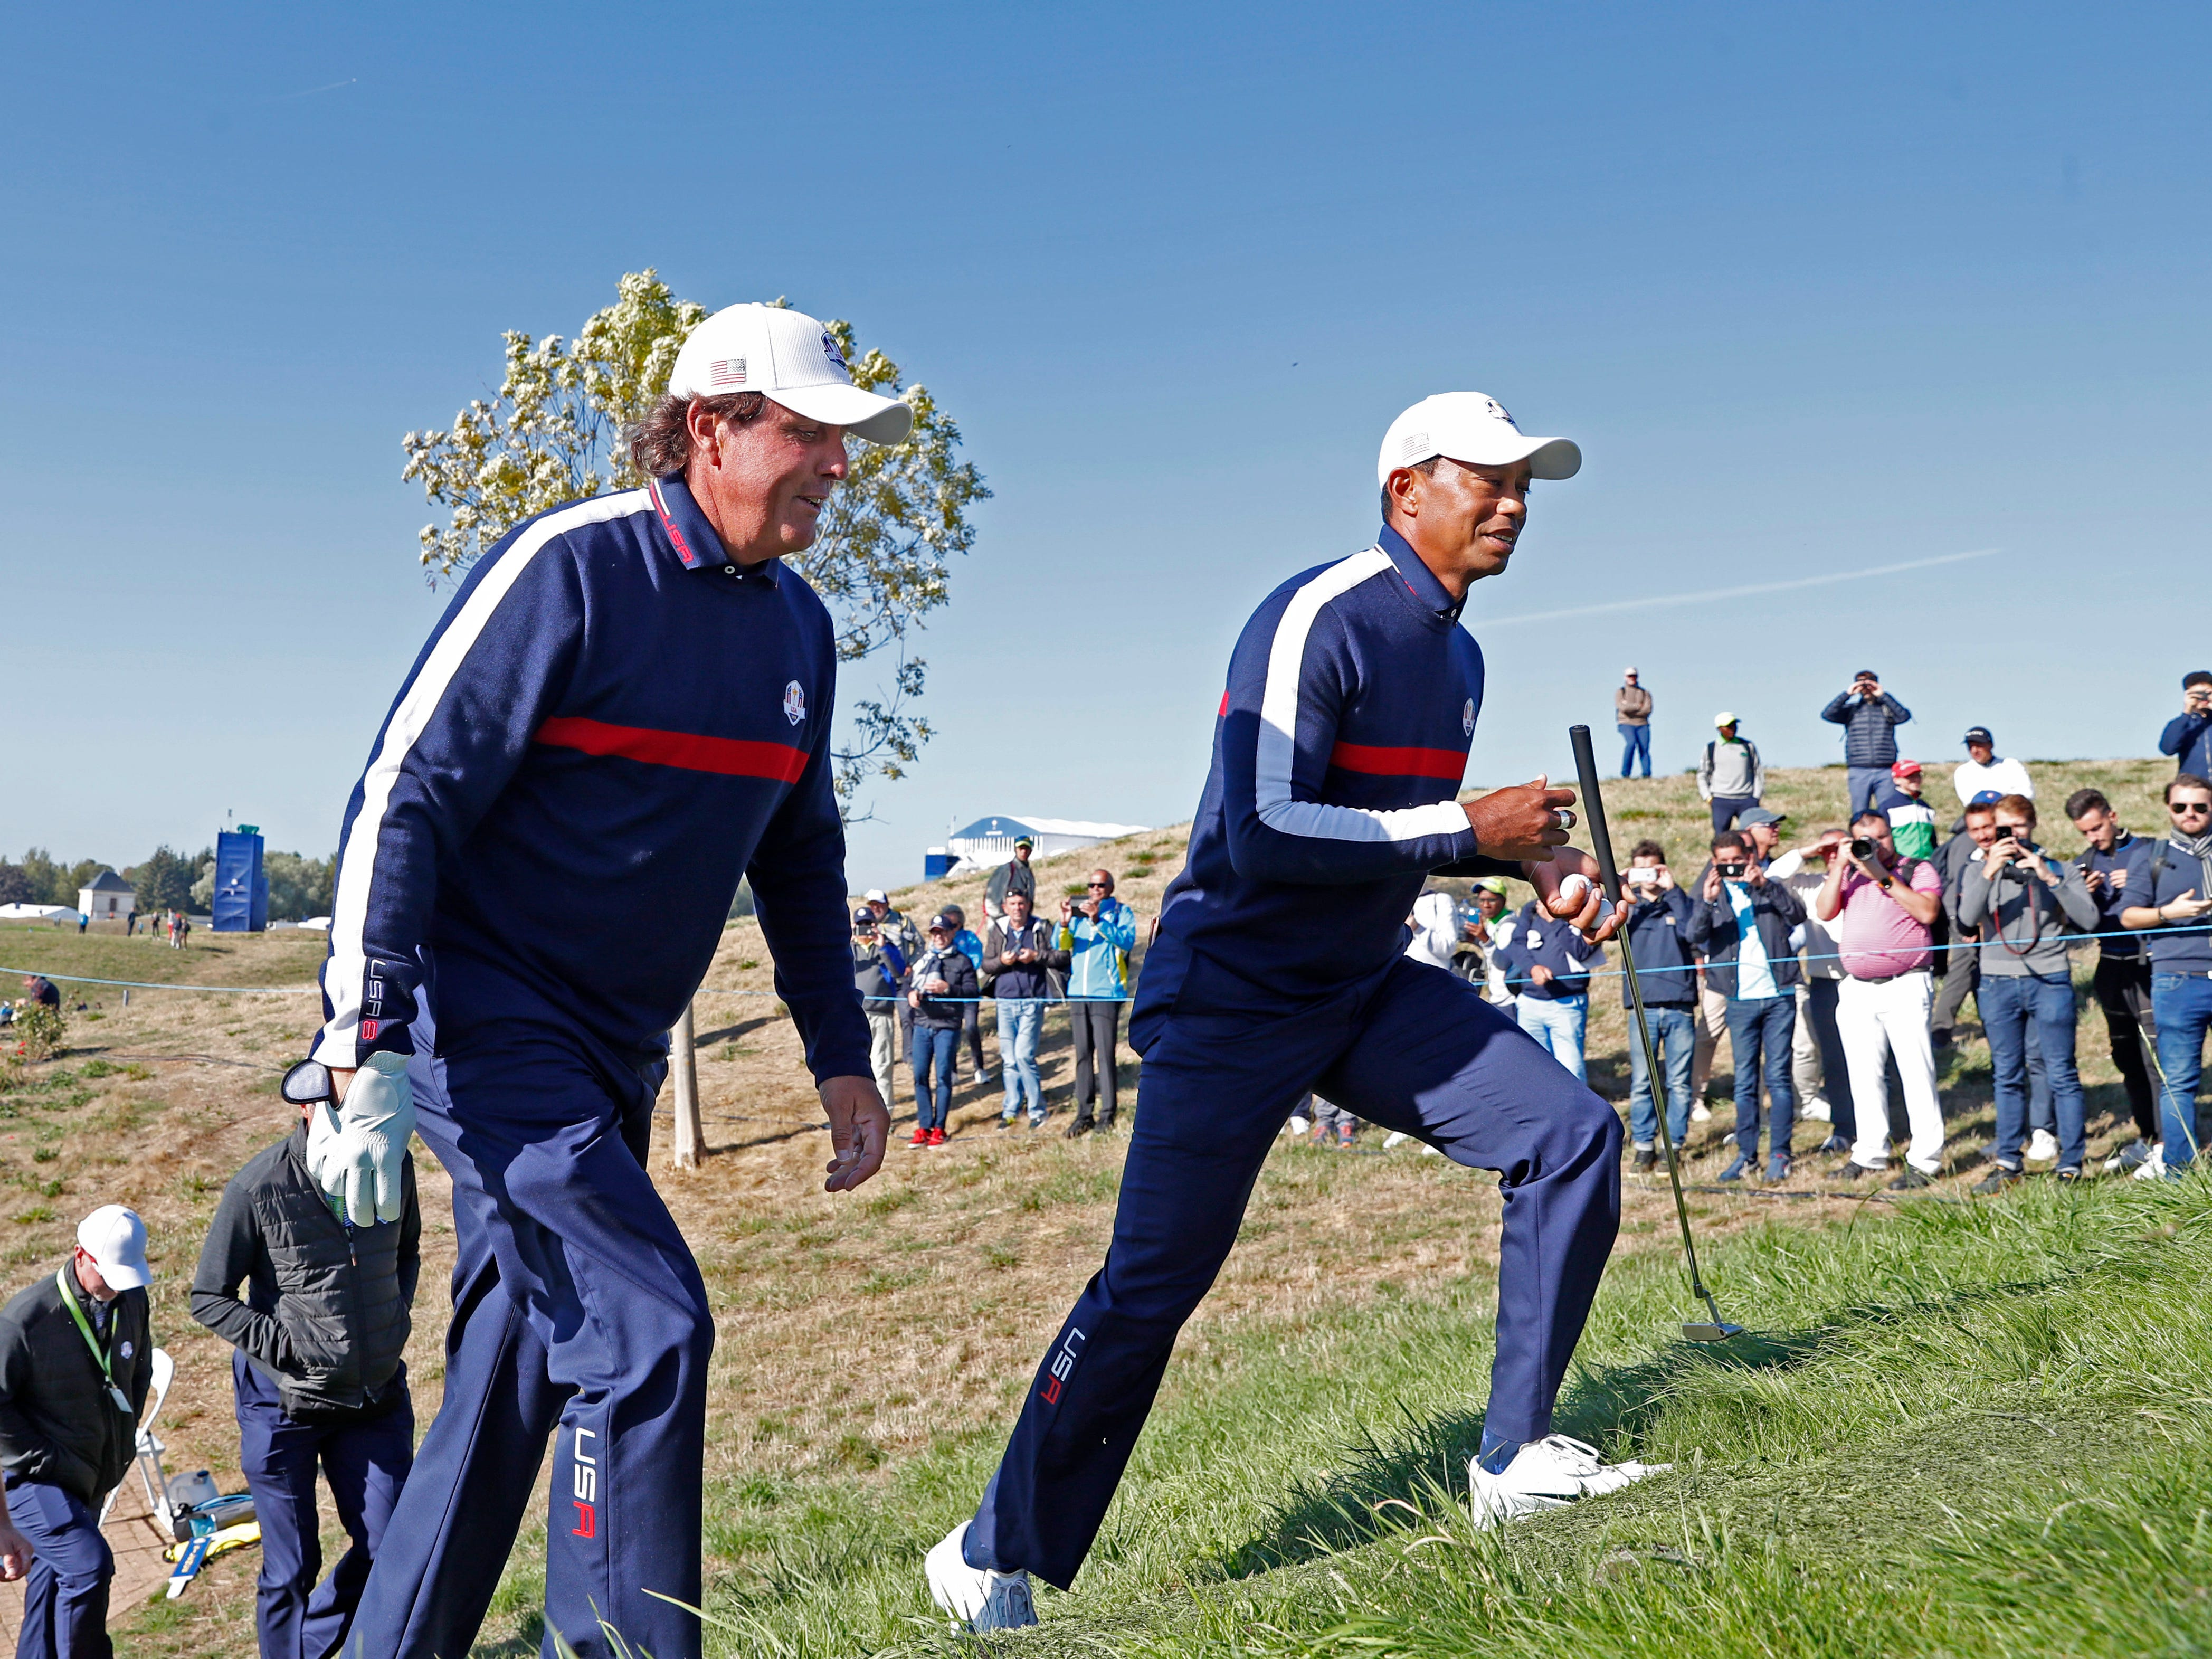 USA golfers Phil Mickelson and Tiger Woods walk to the 7th tee during a Ryder Cup practice round.